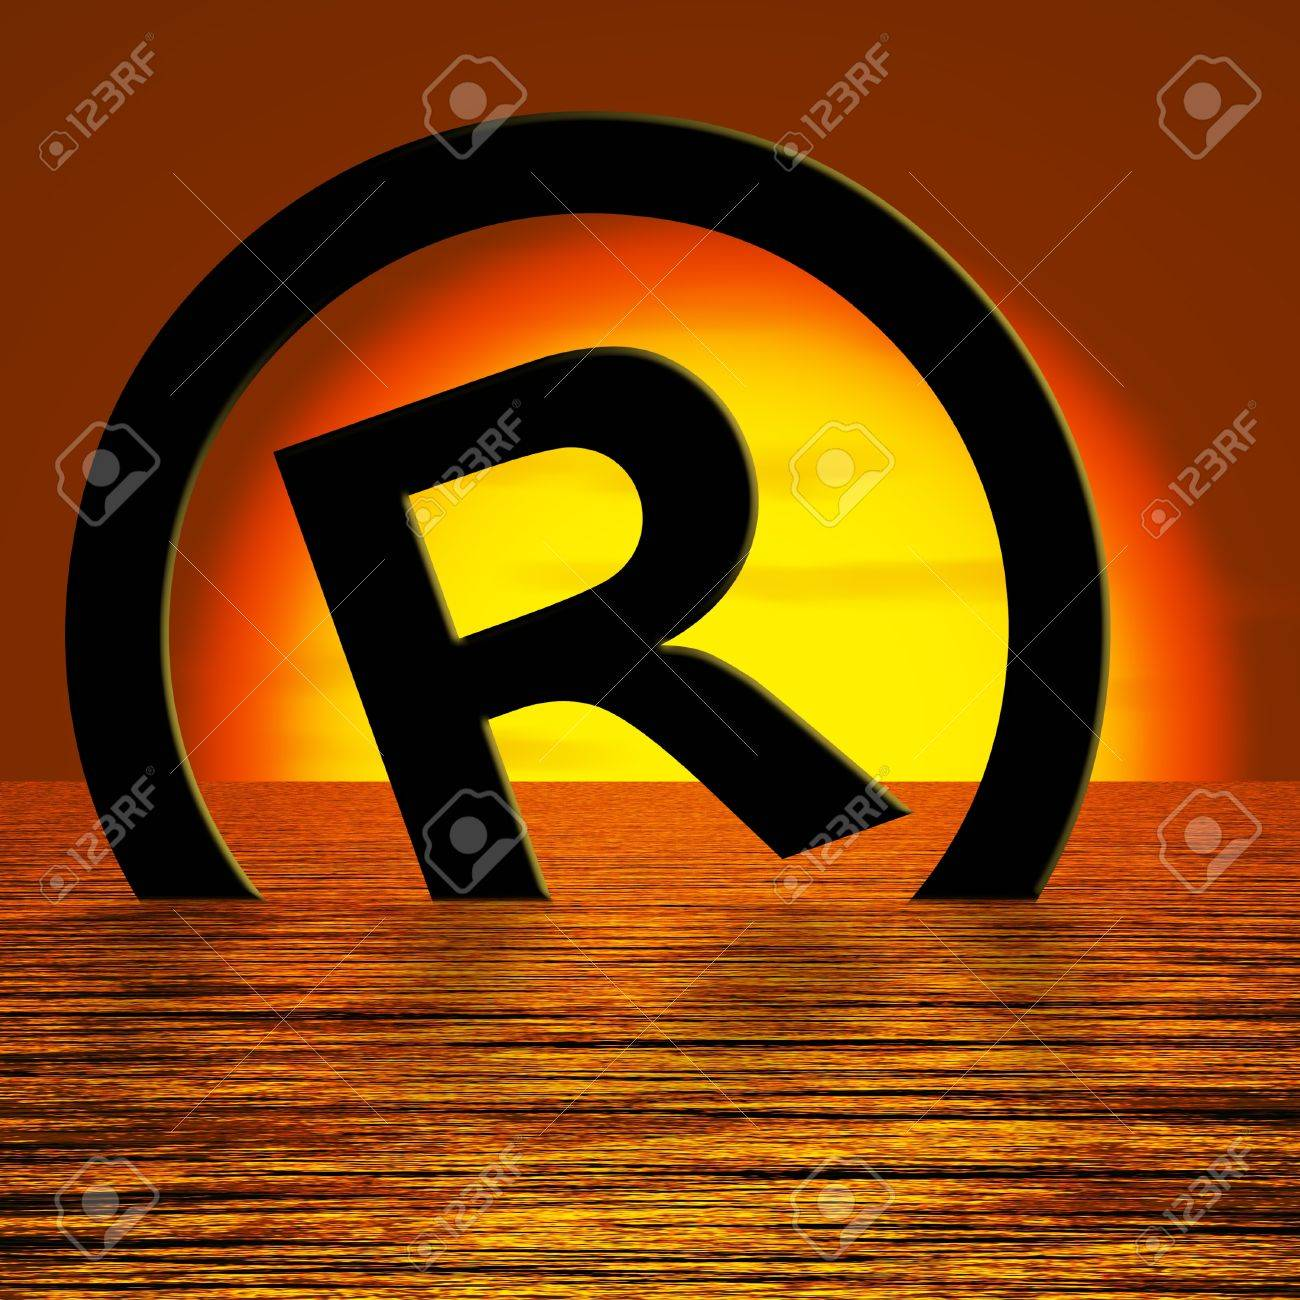 Registered Symbol Sinking Meaning Piracy Or Infringements Stock